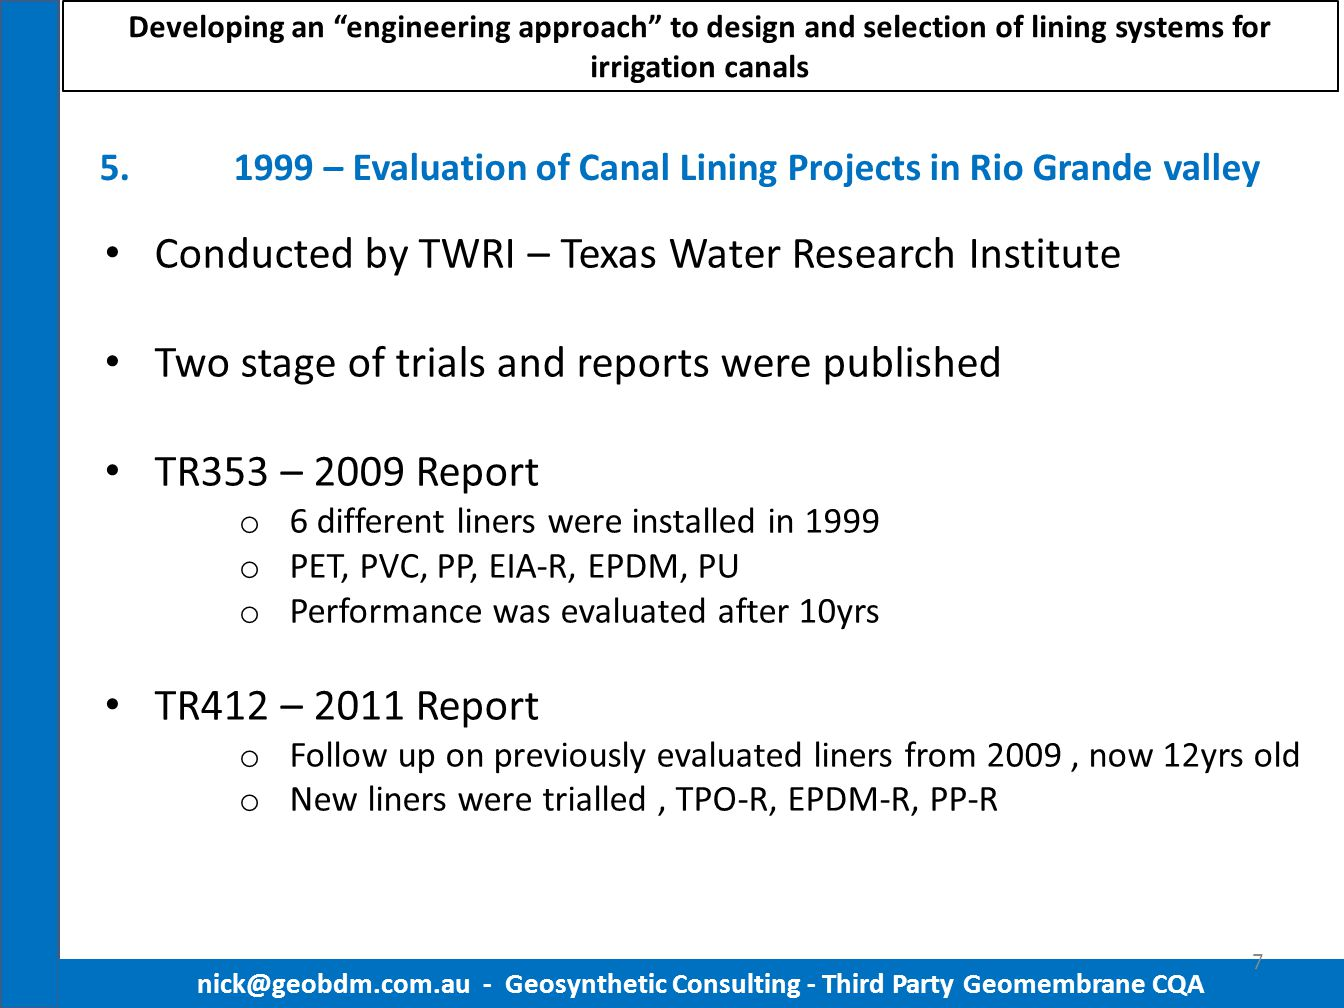 5.1999 – Evaluation of Canal Lining Projects in Rio Grande valley nick@geobdm.com.au - Geosynthetic Consulting - Third Party Geomembrane CQA Conducted